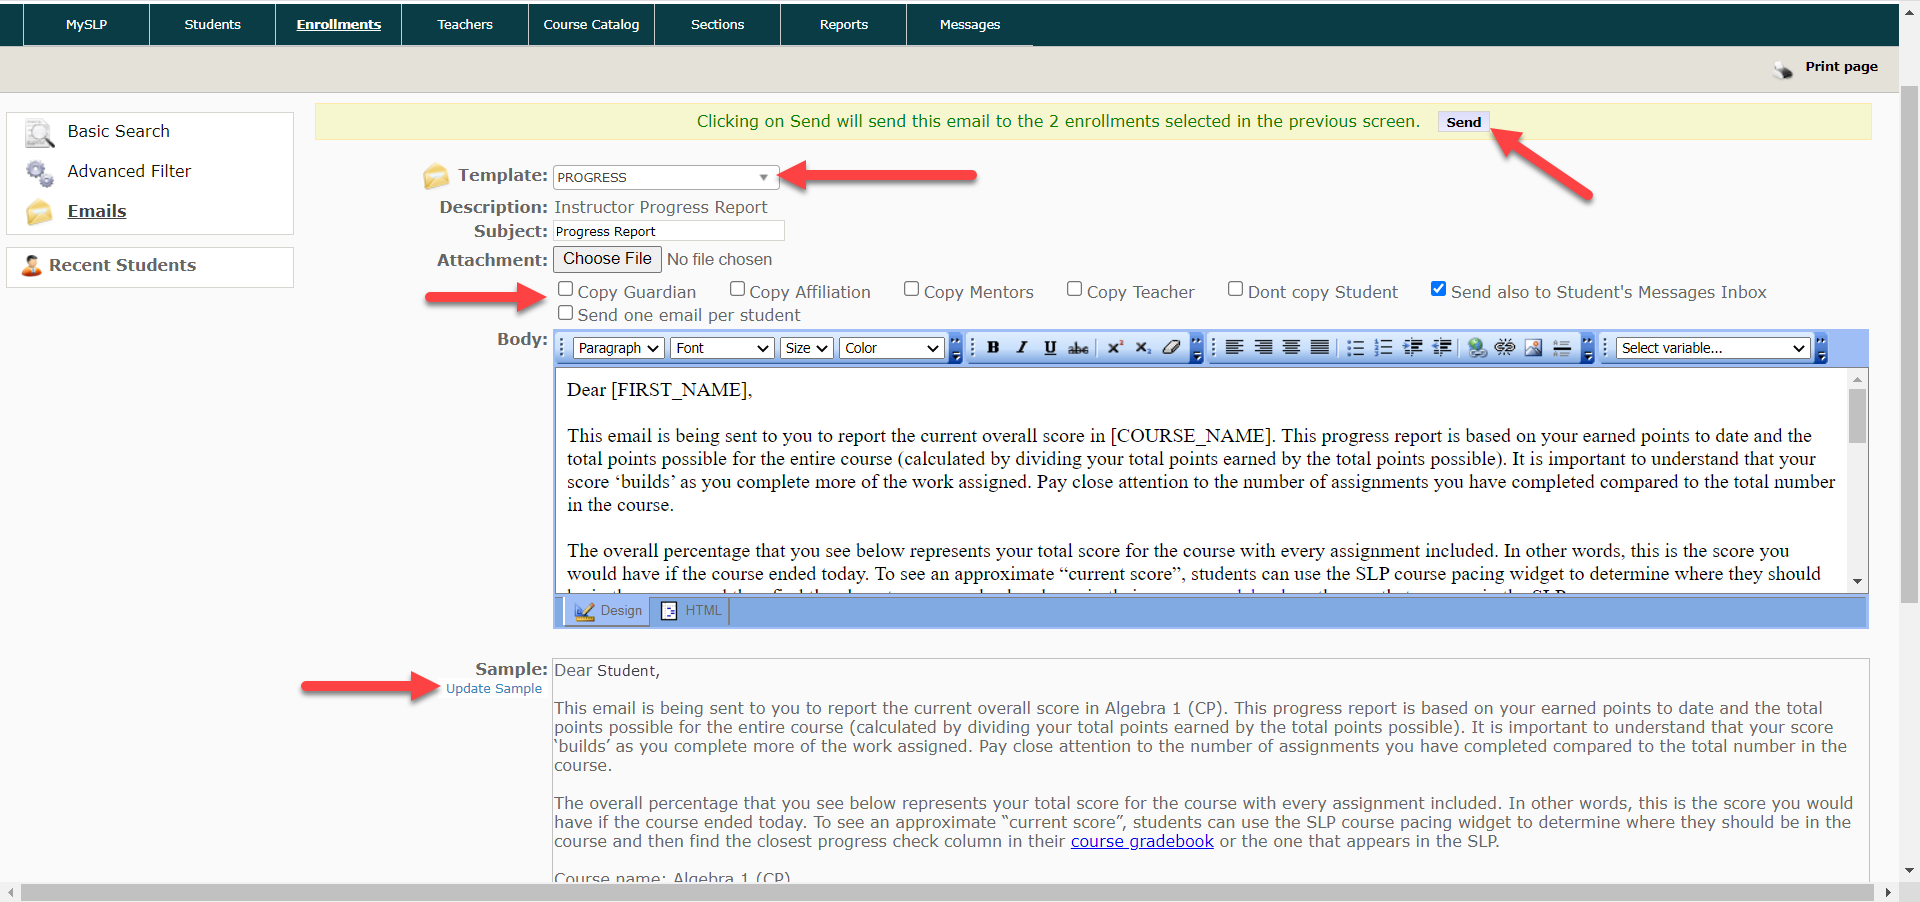 An Image of the template email page is shown. Arrows point to the template drop-down, to the carbon copy checkboxes, the update sample link and to the Send button at the top of the page.